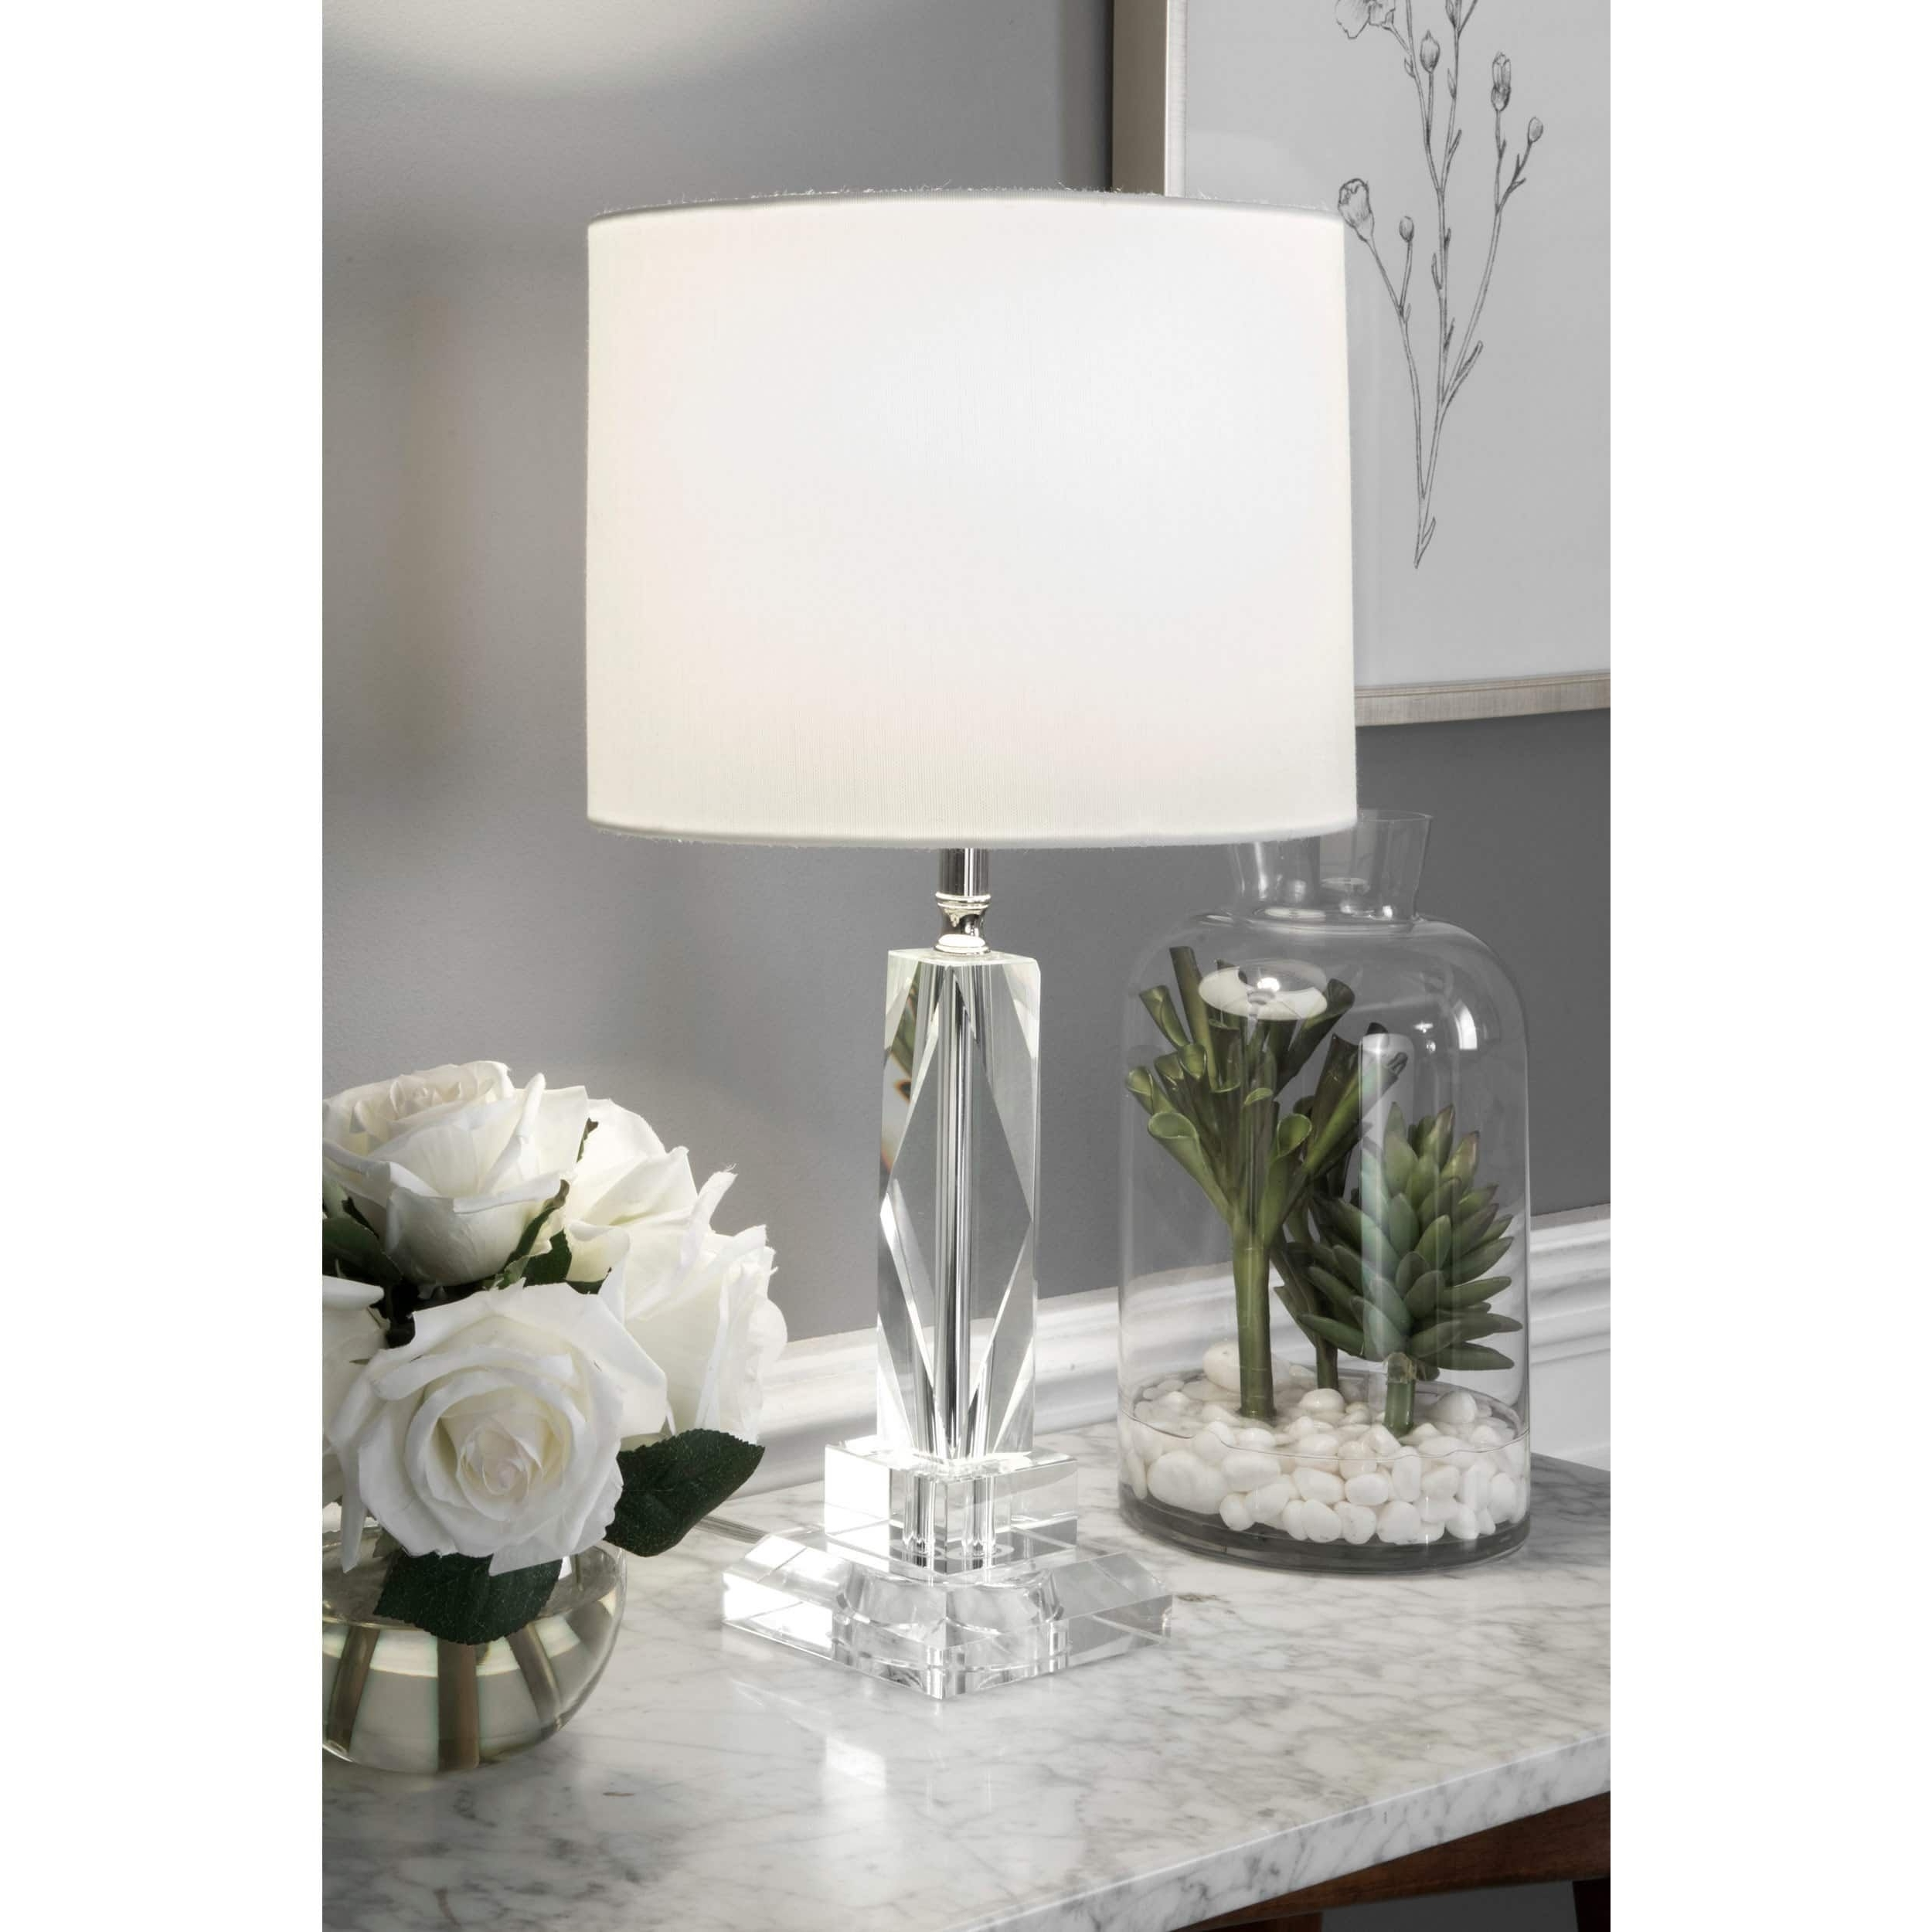 Desk Table Reading Lamp White Light Book Bedroom Living Room Home Throughout 2017 Living Room Table Reading Lamps (View 3 of 15)